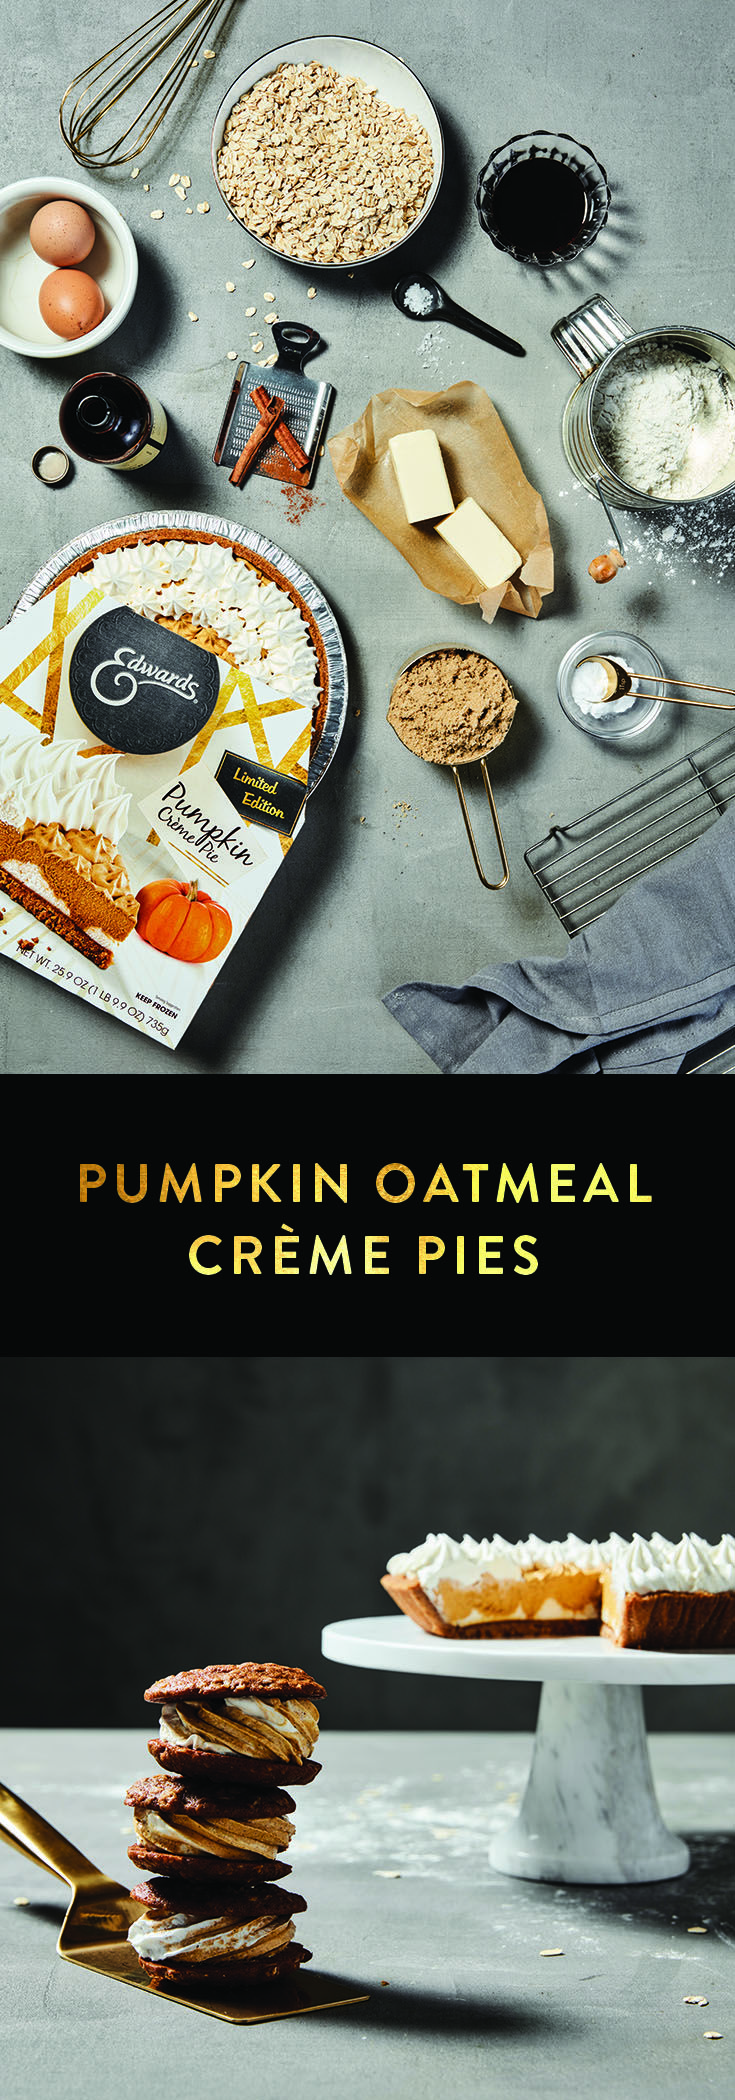 Pumpkin Oatmeal Crème Pies. Oh! My! Gourd! Seize the holidays with a tasty twist on these classic treats. Get the full recipe here: https://www.edwardsdesserts.com/recipes/recipe-pumpkin-oatmeal-creme-pies.html